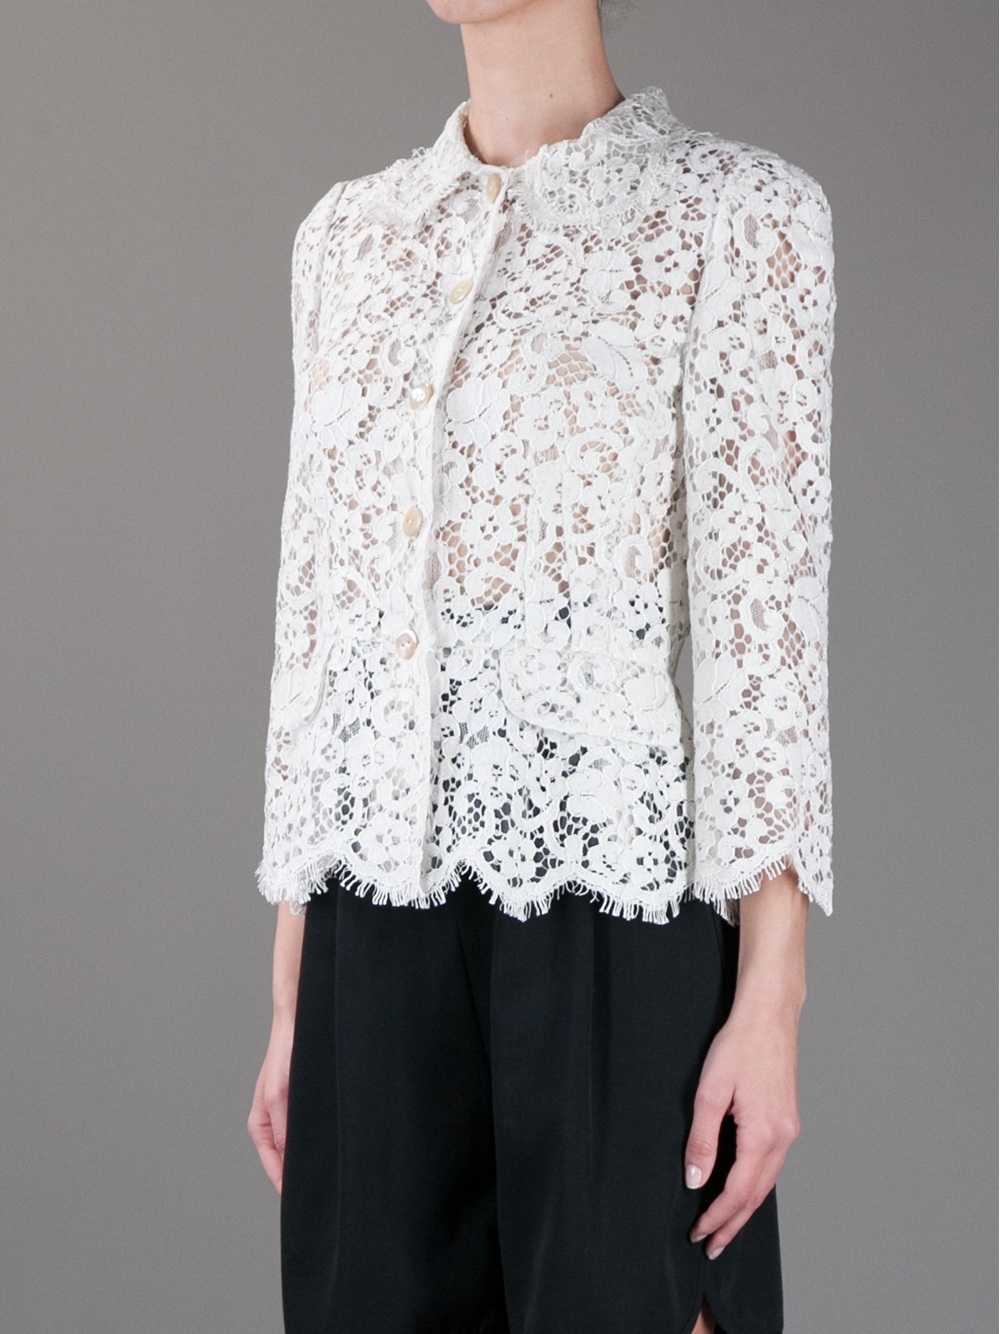 Dolce & gabbana Sheer Lace Jacket in White